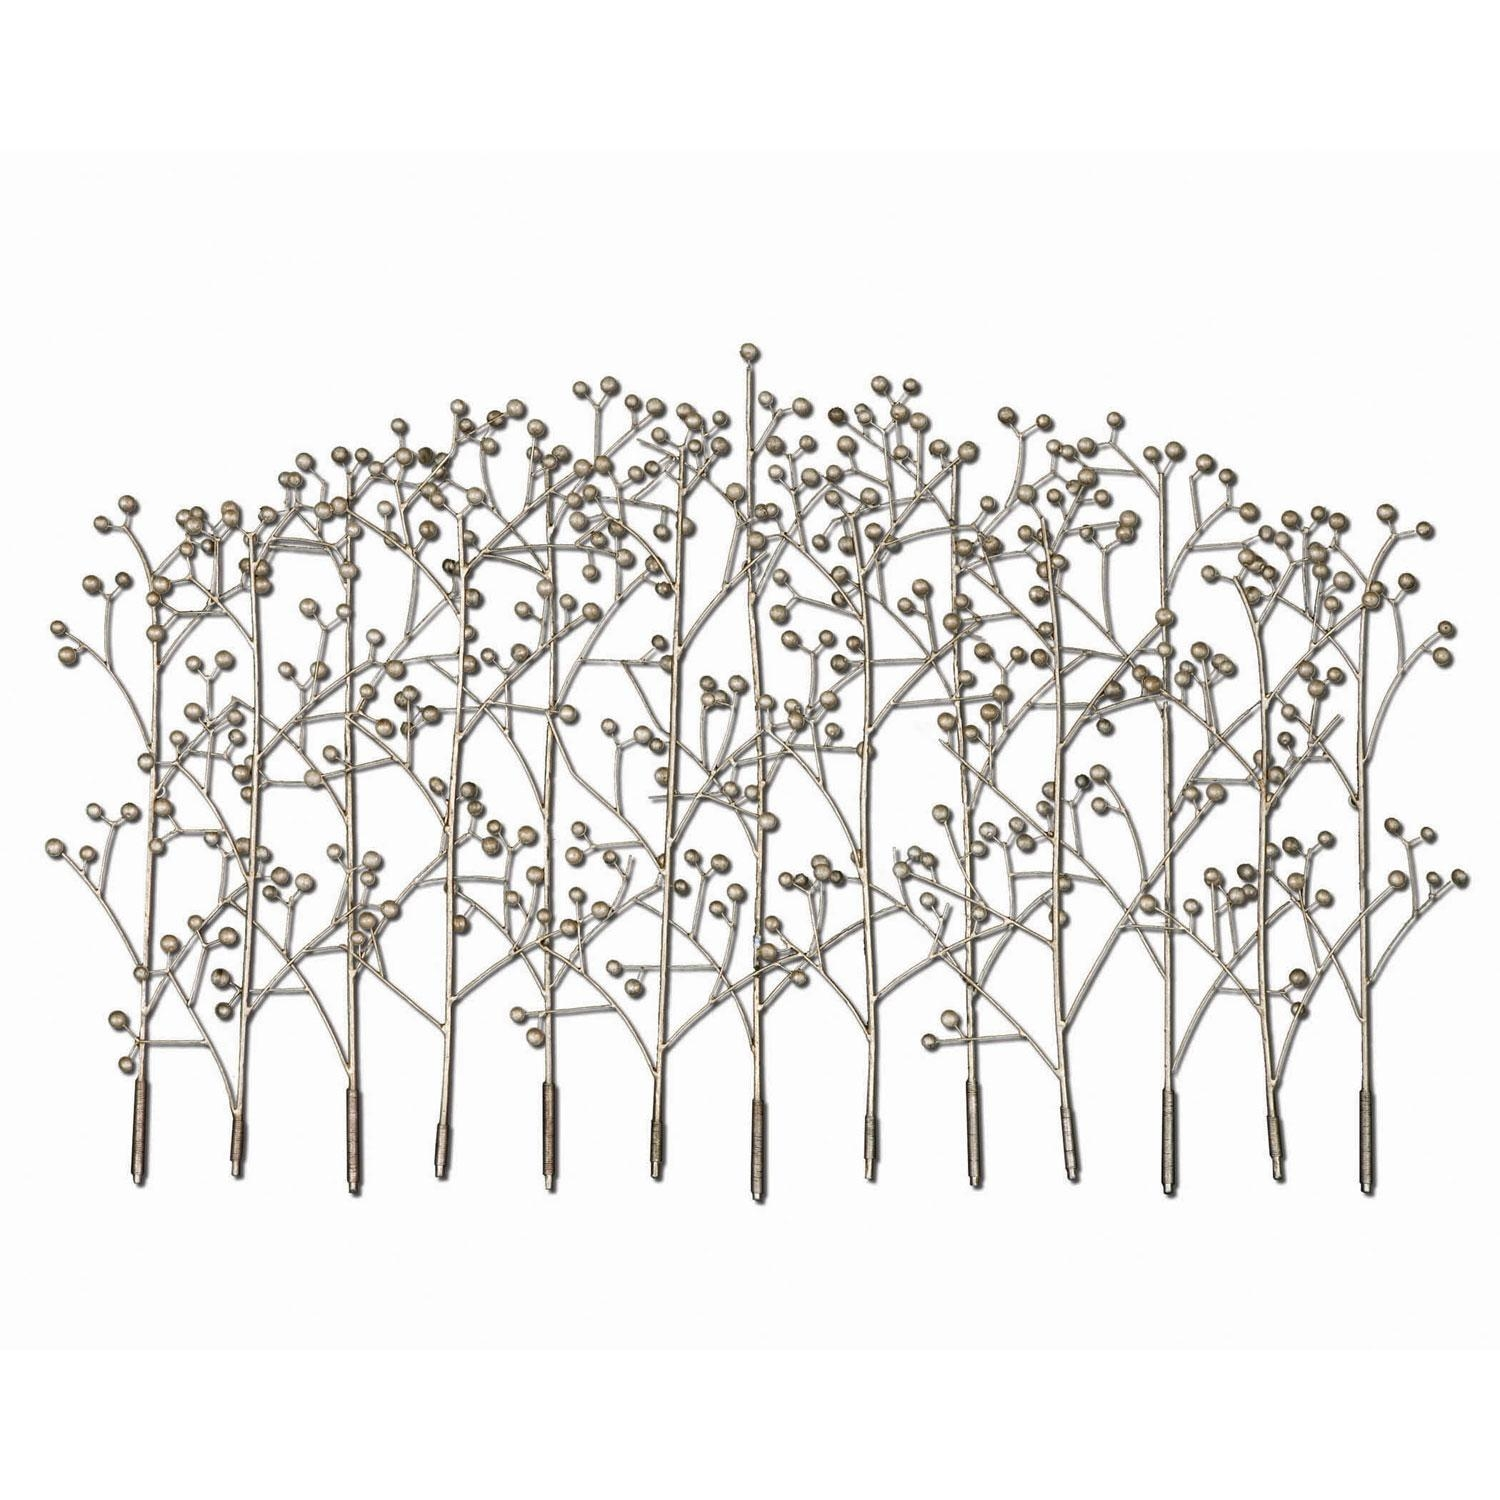 Iron Trees Metal Wall Art Uttermost Wall Sculpture Wall Decor Home In Uttermost Metal Wall Art (Image 3 of 20)